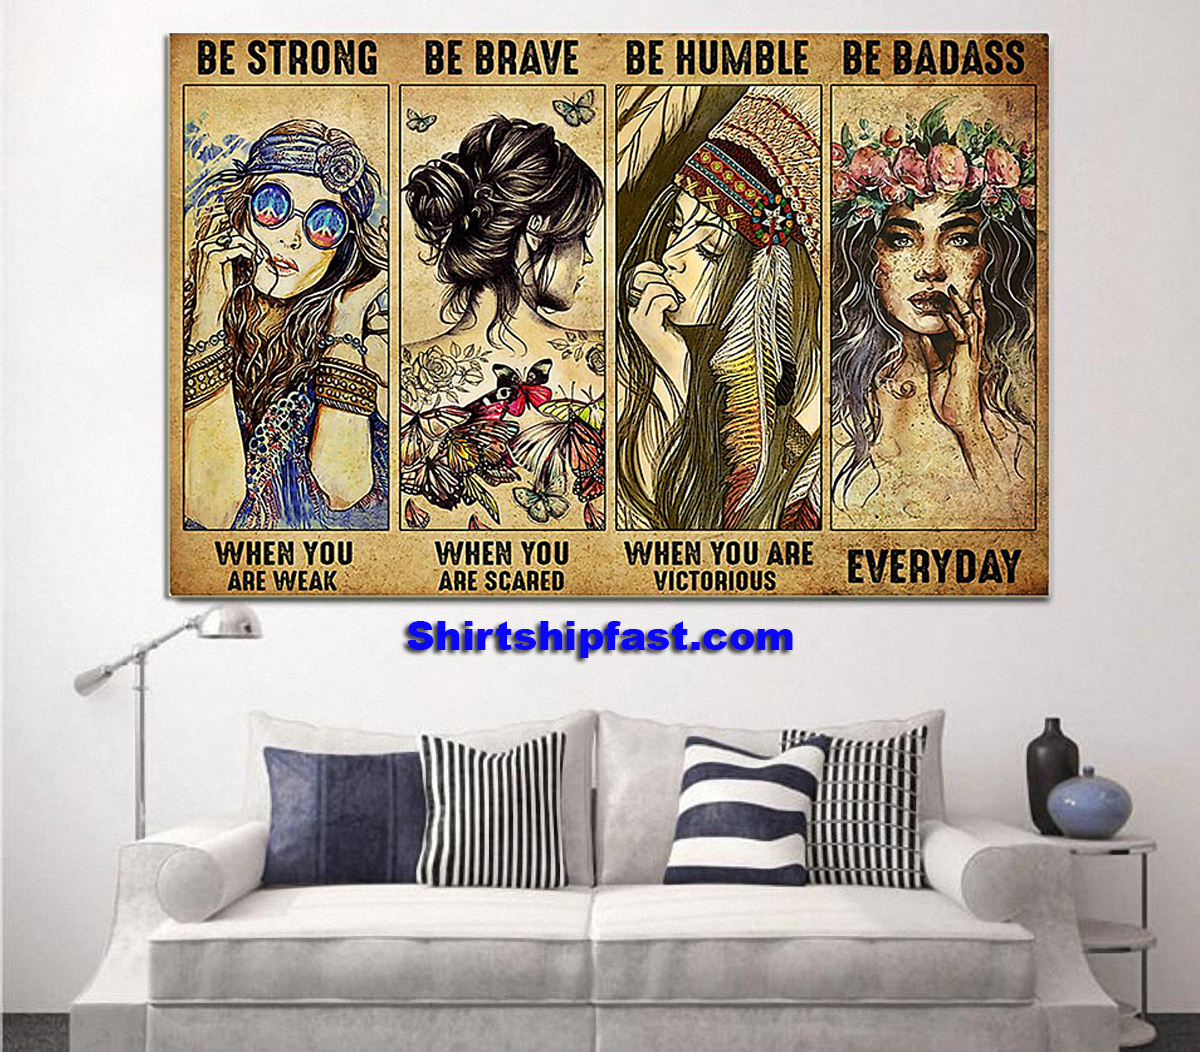 Poster Hippie be strong be brave be humble be badass - Picture 3